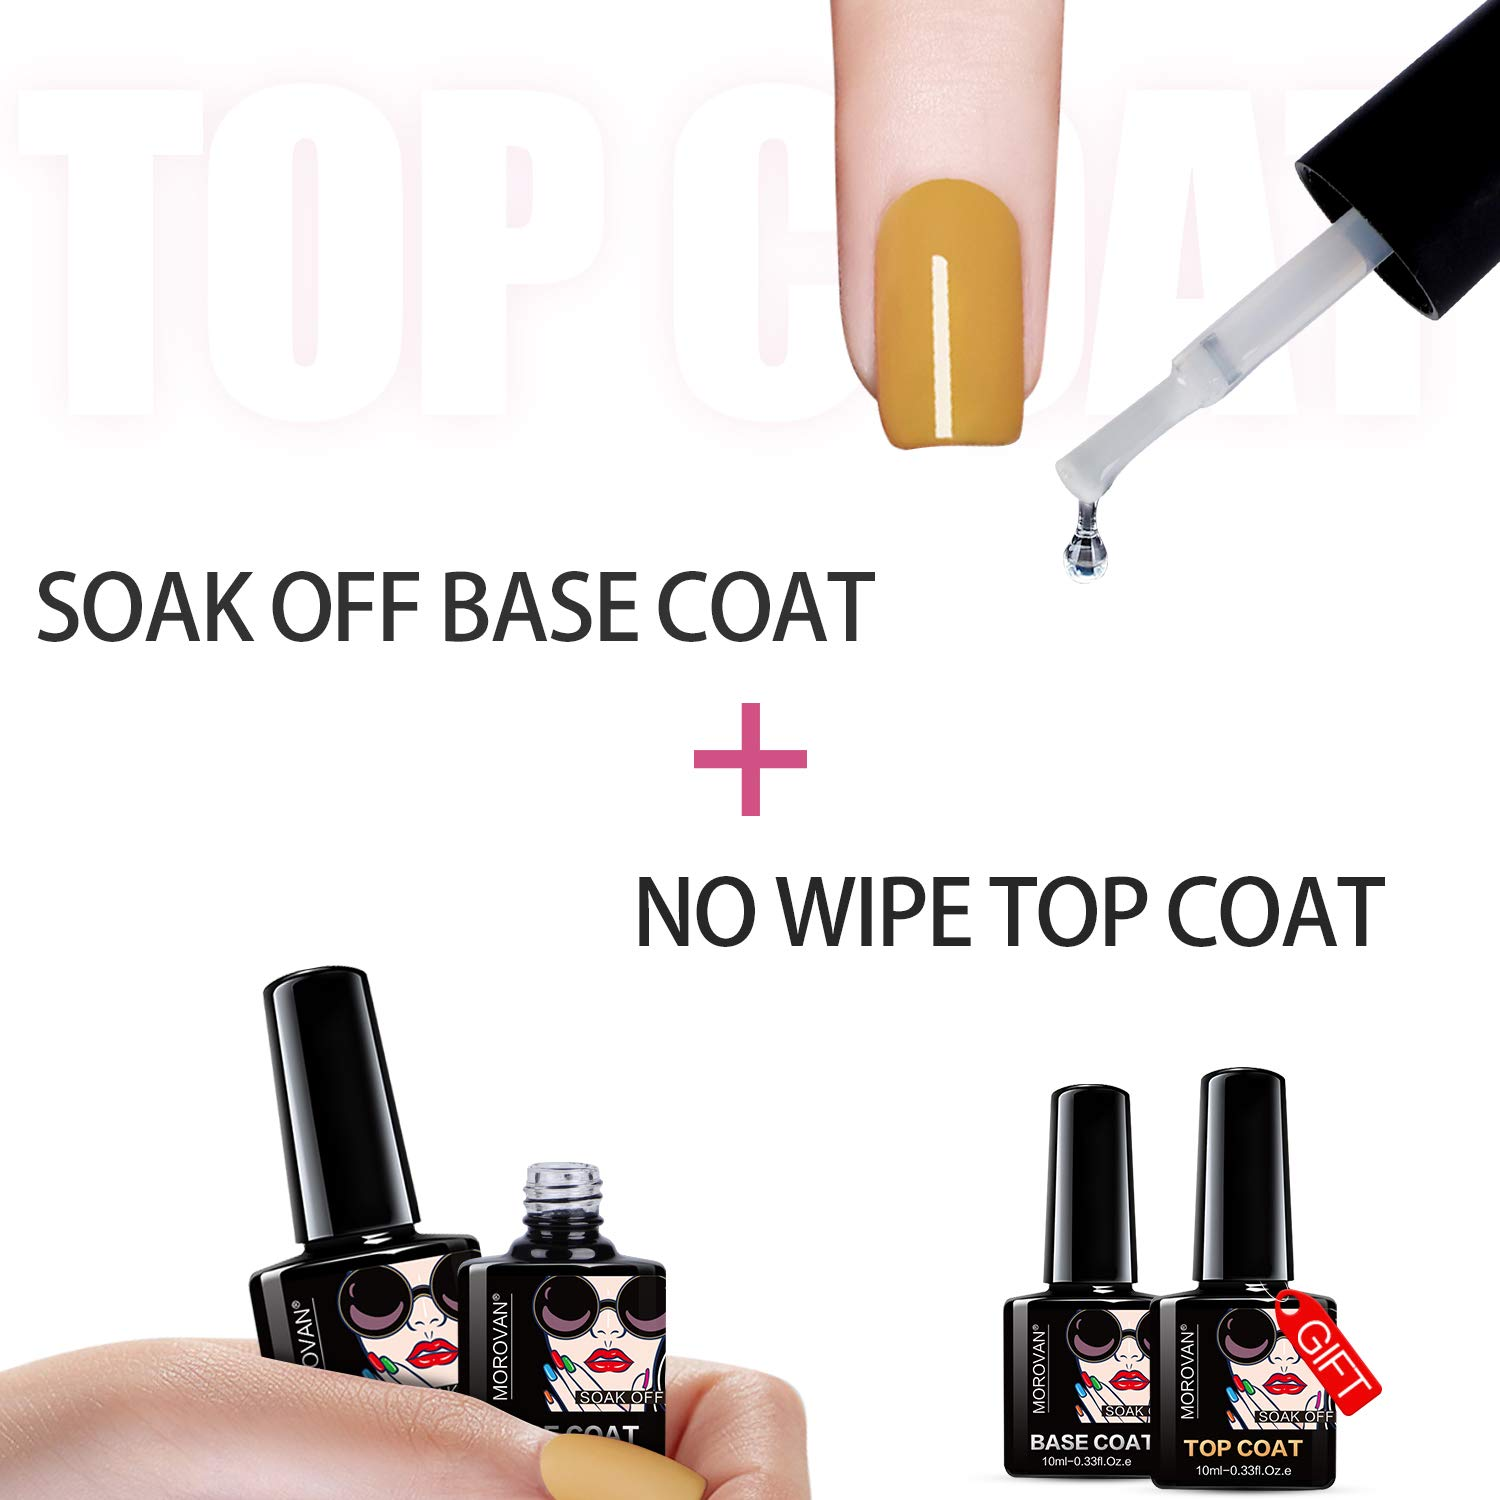 Morovan Gel Base And Top Coat Set - 4 Pcs UV LED Nail Polish Primer and No Wipe Top Coat Gel Nails Sets Quick Dry Long Lasting Clear Gels Manicure Care Kit Gifts for Women Nail Home : Beauty